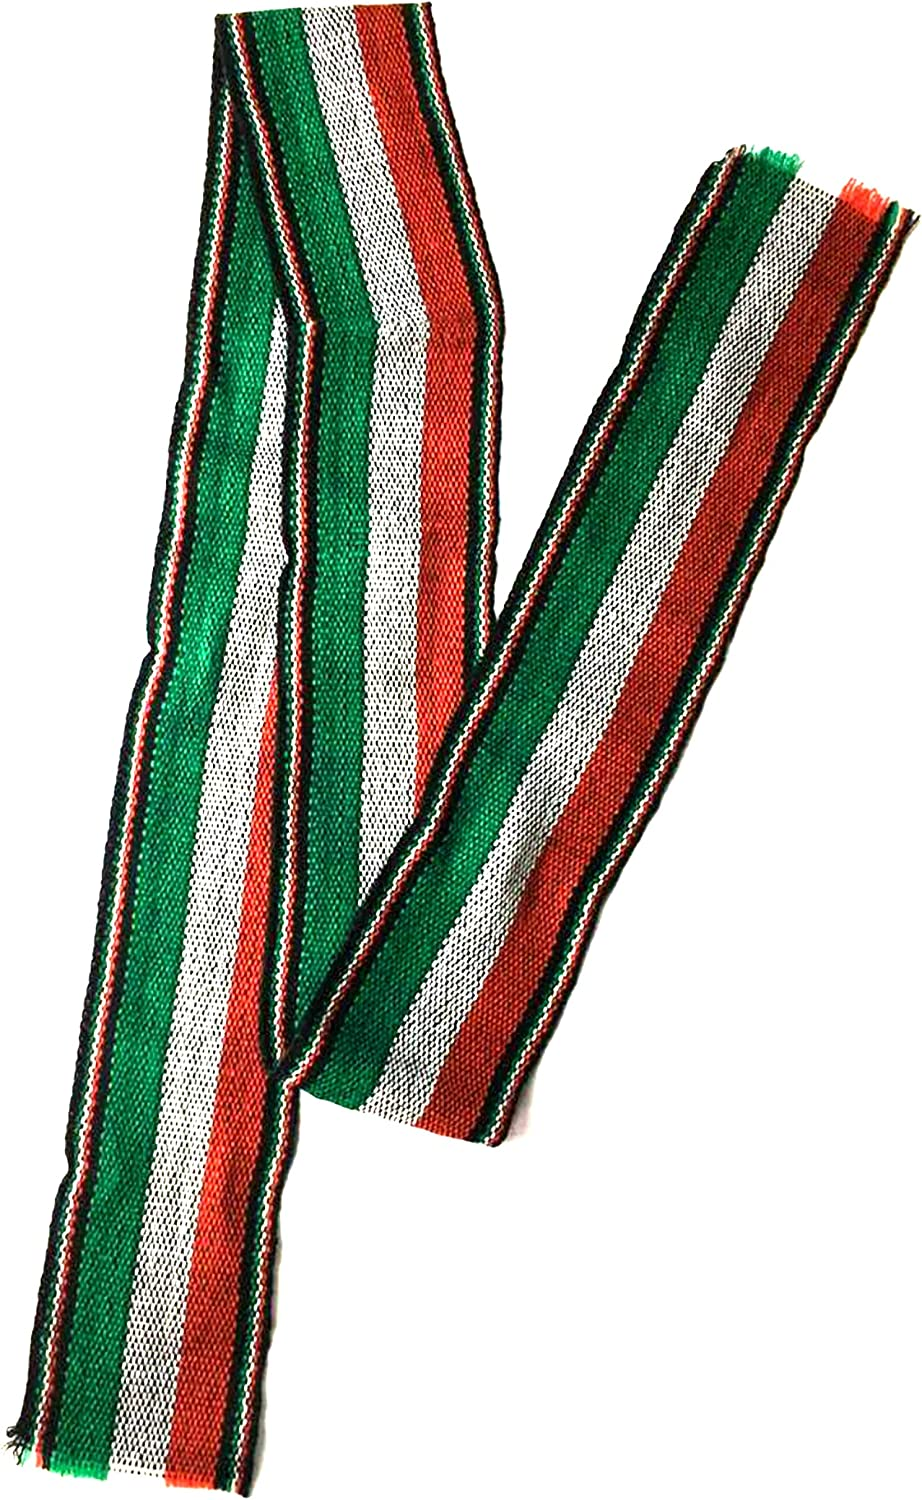 Mexican Charro Belt childs mexican fiesta mariachi Theme Party 54 x 3 inches